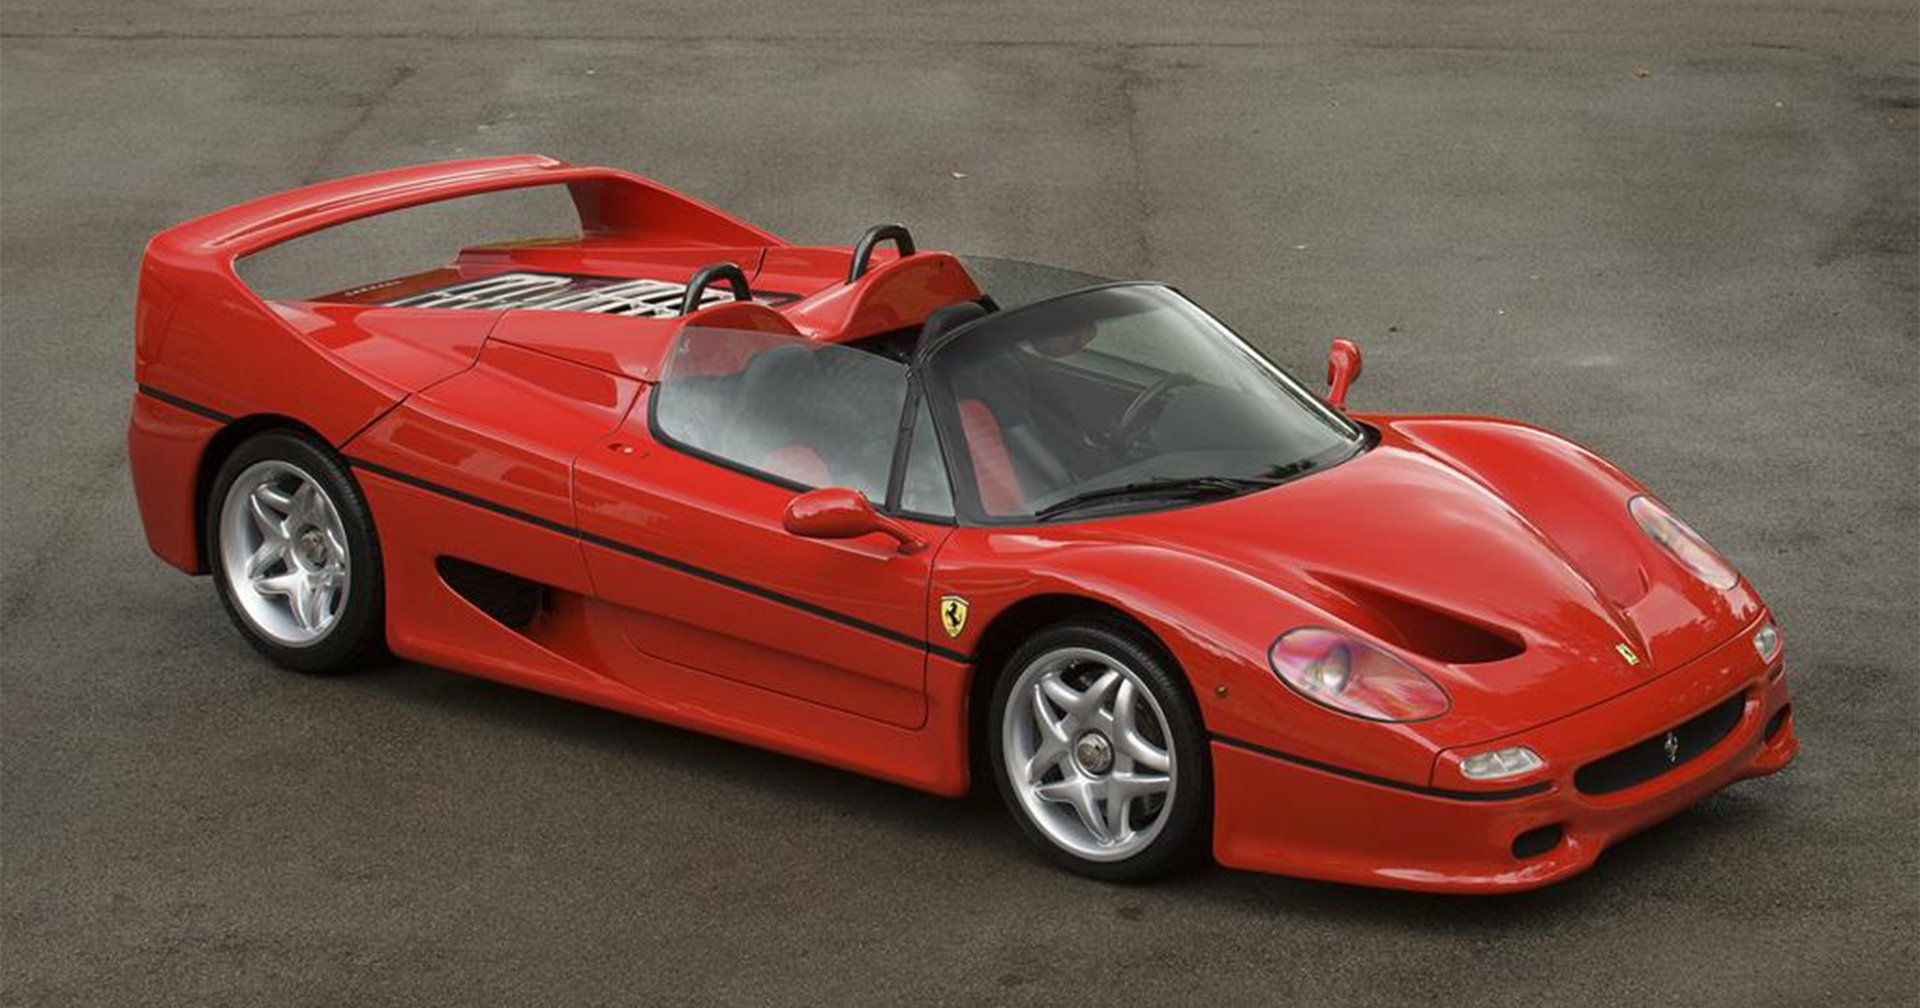 30 of the Best Looking Cars From the 90s - Road & Track